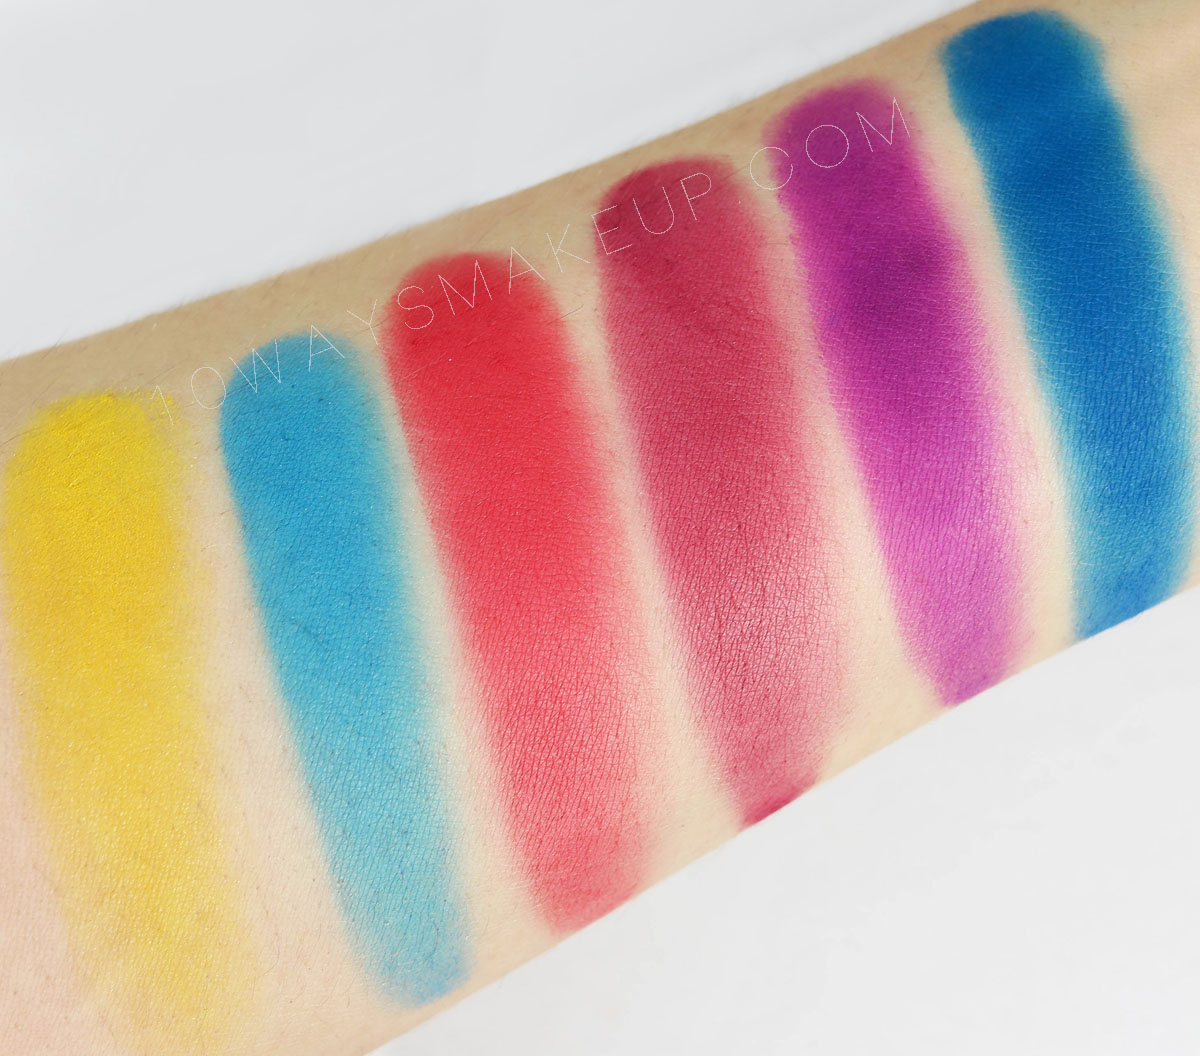 Viseart Editorial Brights palette swatch review